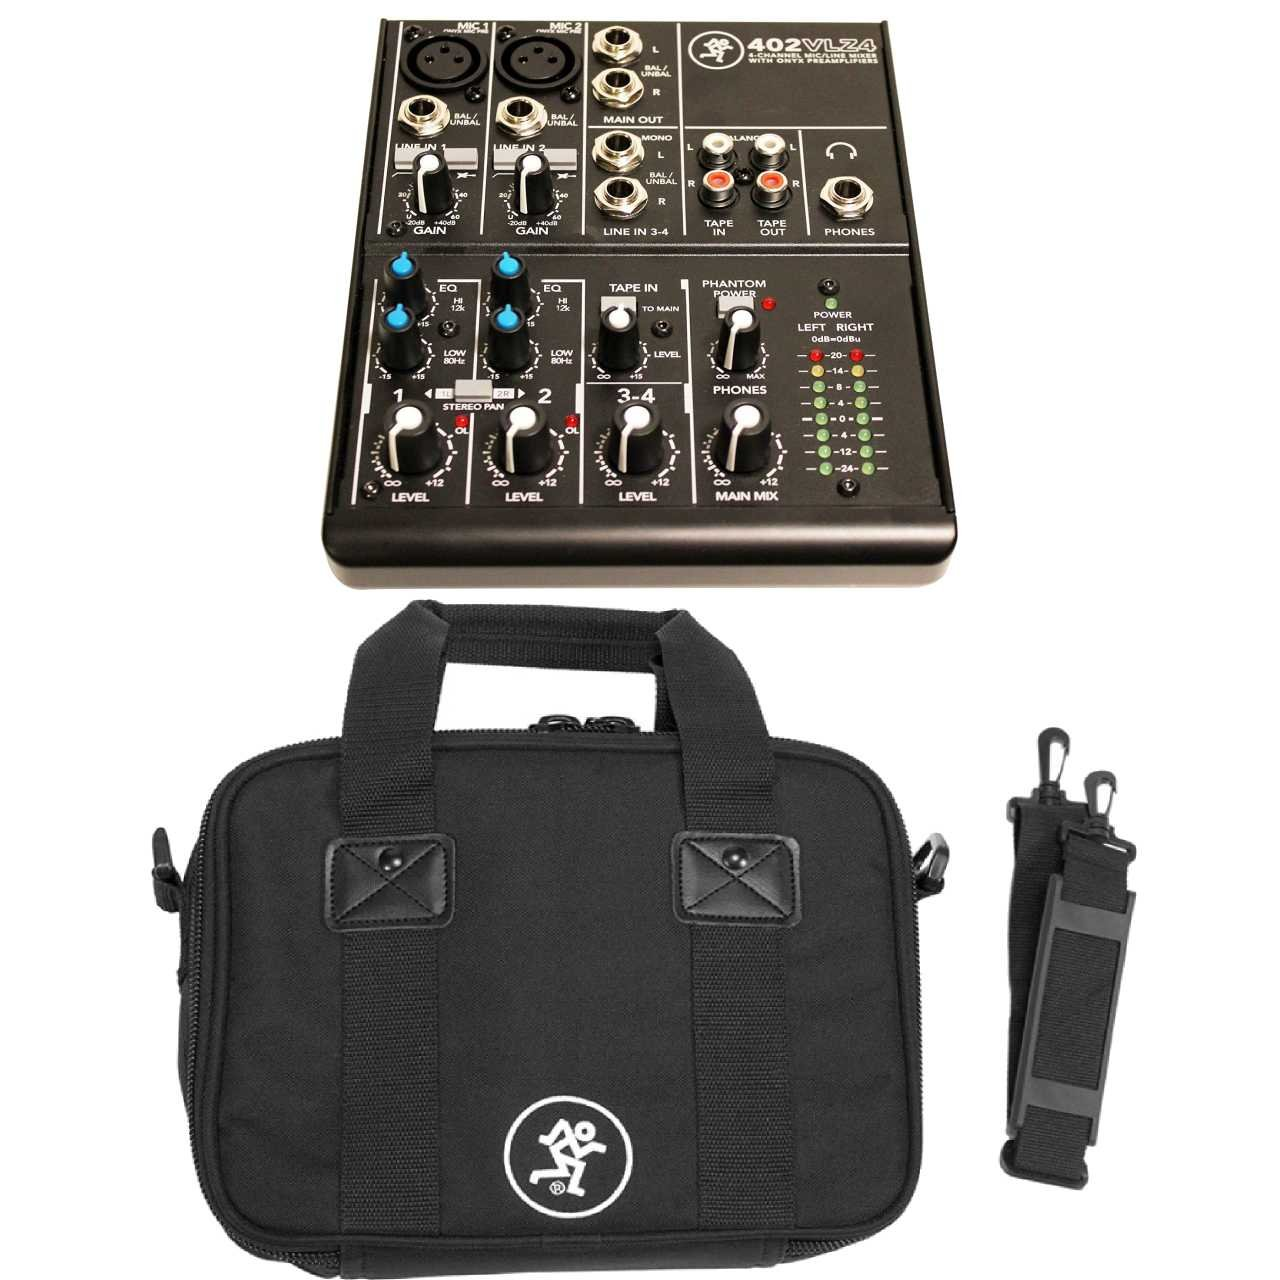 Mackie 402VLZ4, 4-channel Ultra Compact Mixer with Mackie Mixer Bag